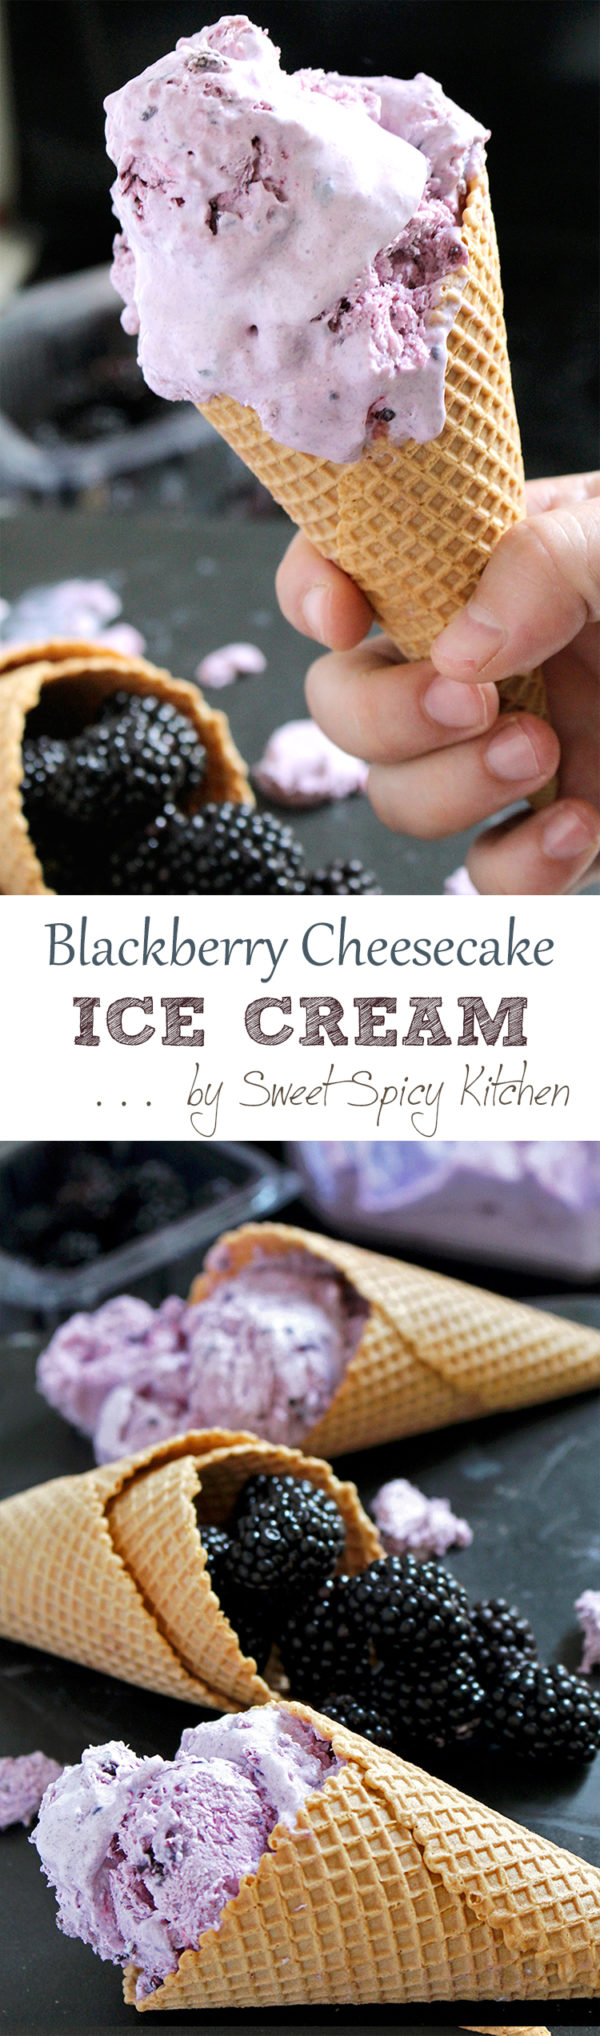 Delicious Blackberry Cheesecake Ice Cream cool and refreshing dessert perfect for hot summer days. Great combo of fresh blackberries and cream cheese in the crunchy cones.